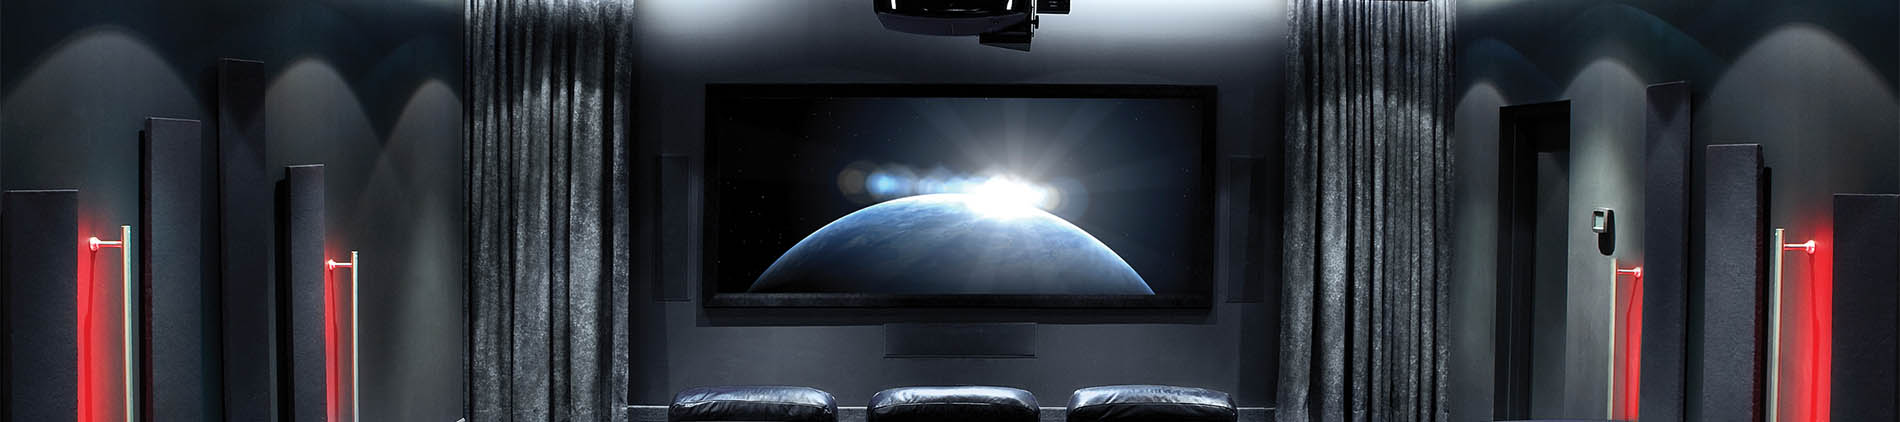 Custom Home, Black, Dark, Projector, Theatre, Screen